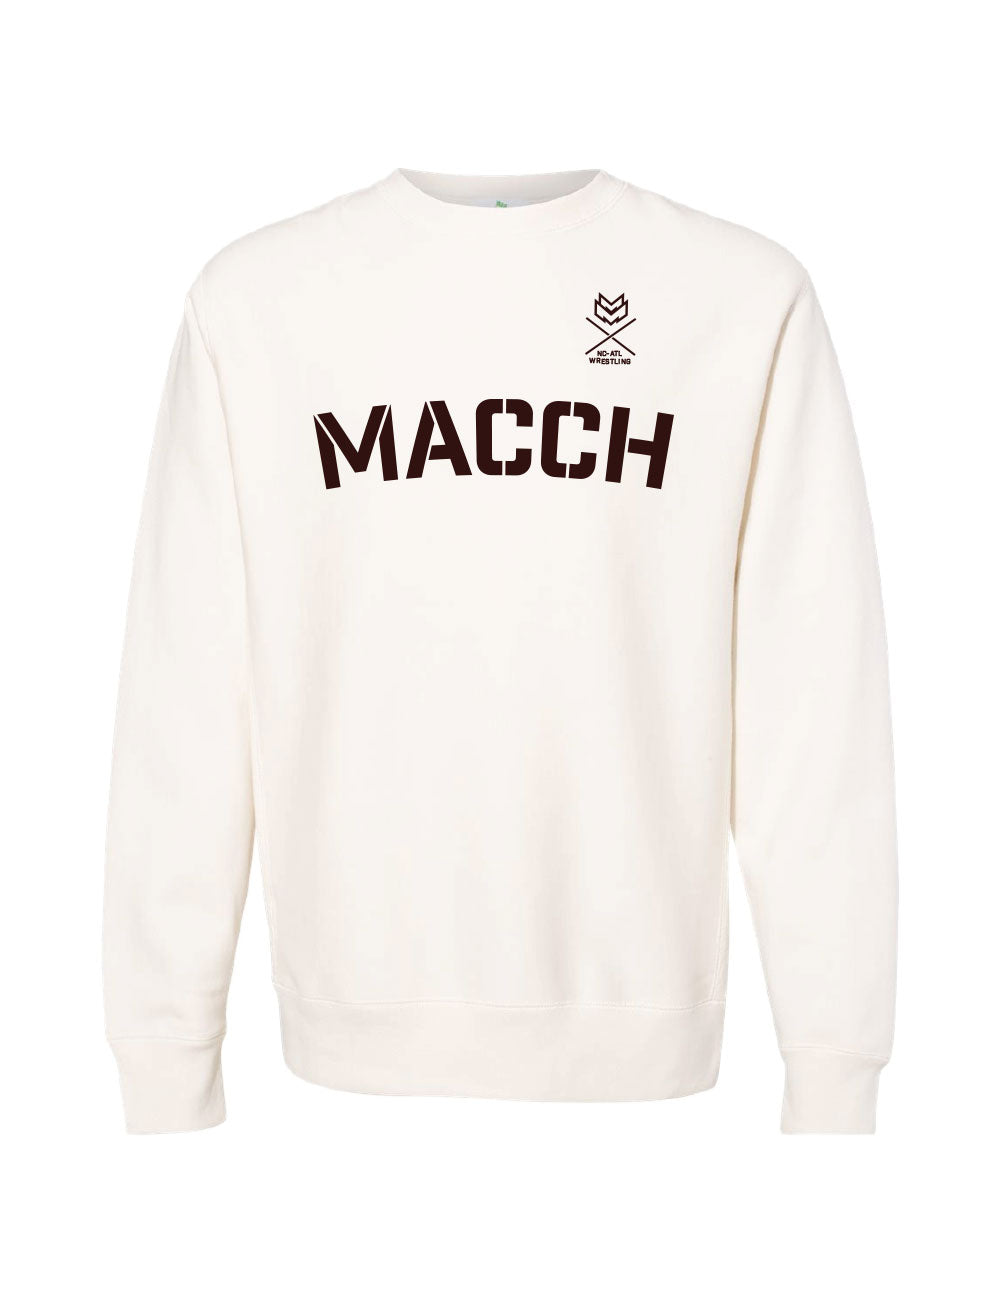 Macch Training Day Crew Sweatshirt